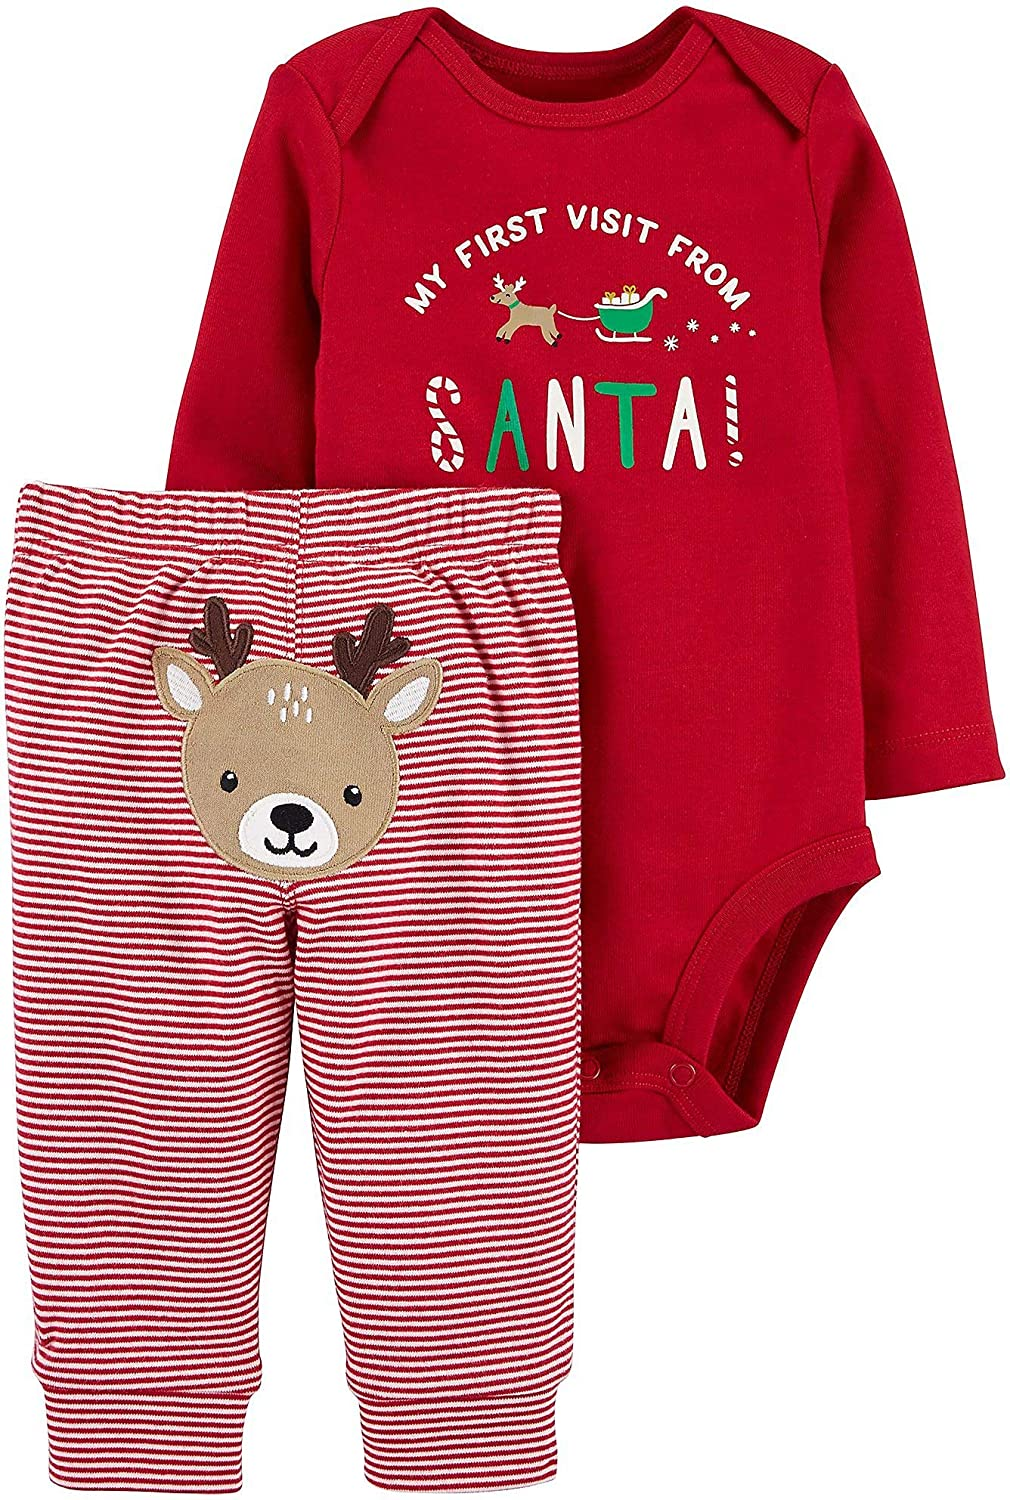 Carters Winter Holiday 2-Piece Christmas My First Visit from Santa Bodysuit and Striped Pants with Embroidered Reindeer Set (Red, 9 Months)